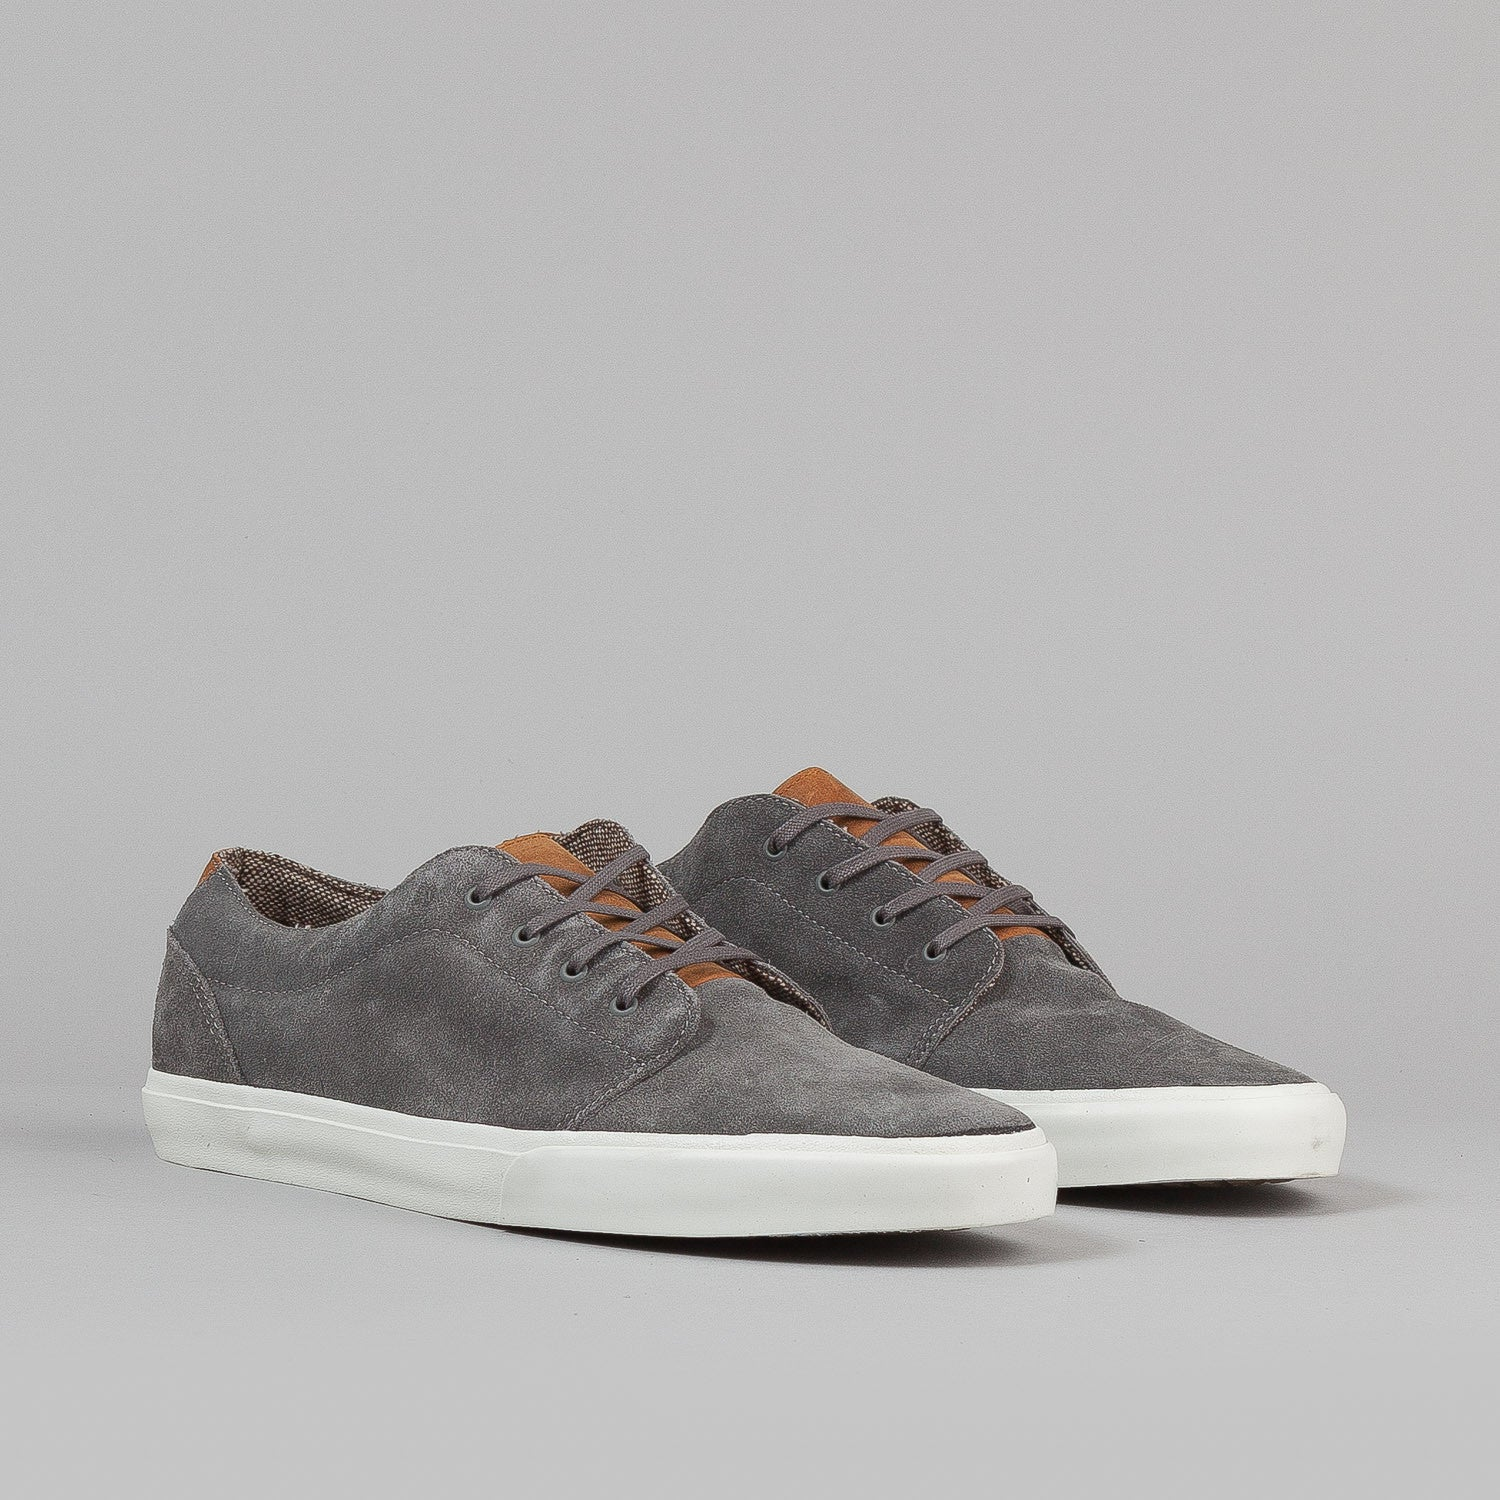 Vans 106 Vulc CA Shoes - (Suede) Charcoal Grey